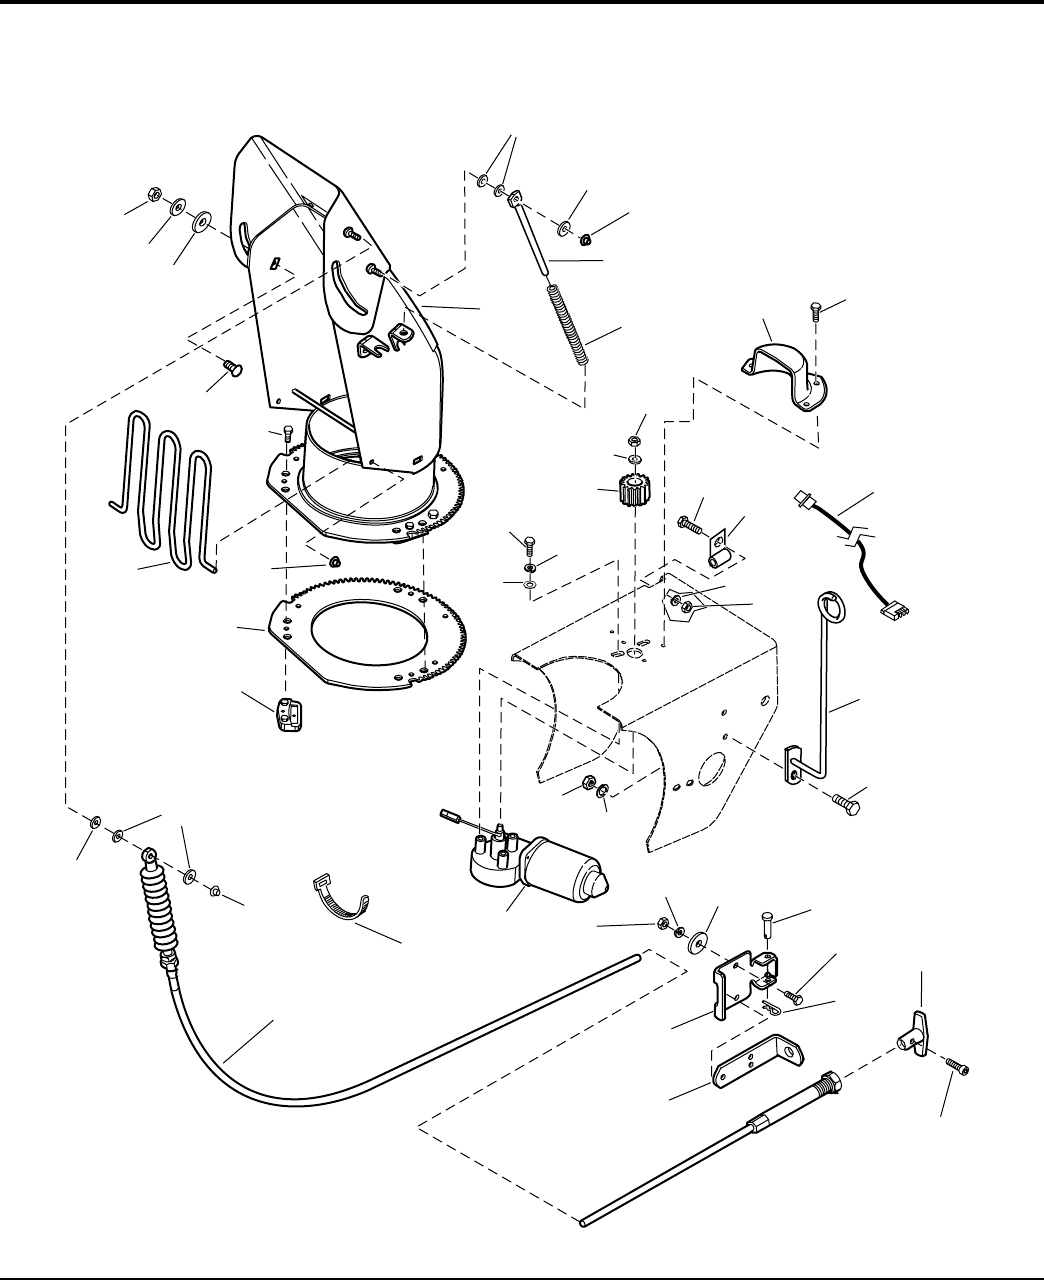 Page 10 of Simplicity Snow Blower Attachment 1694403 User